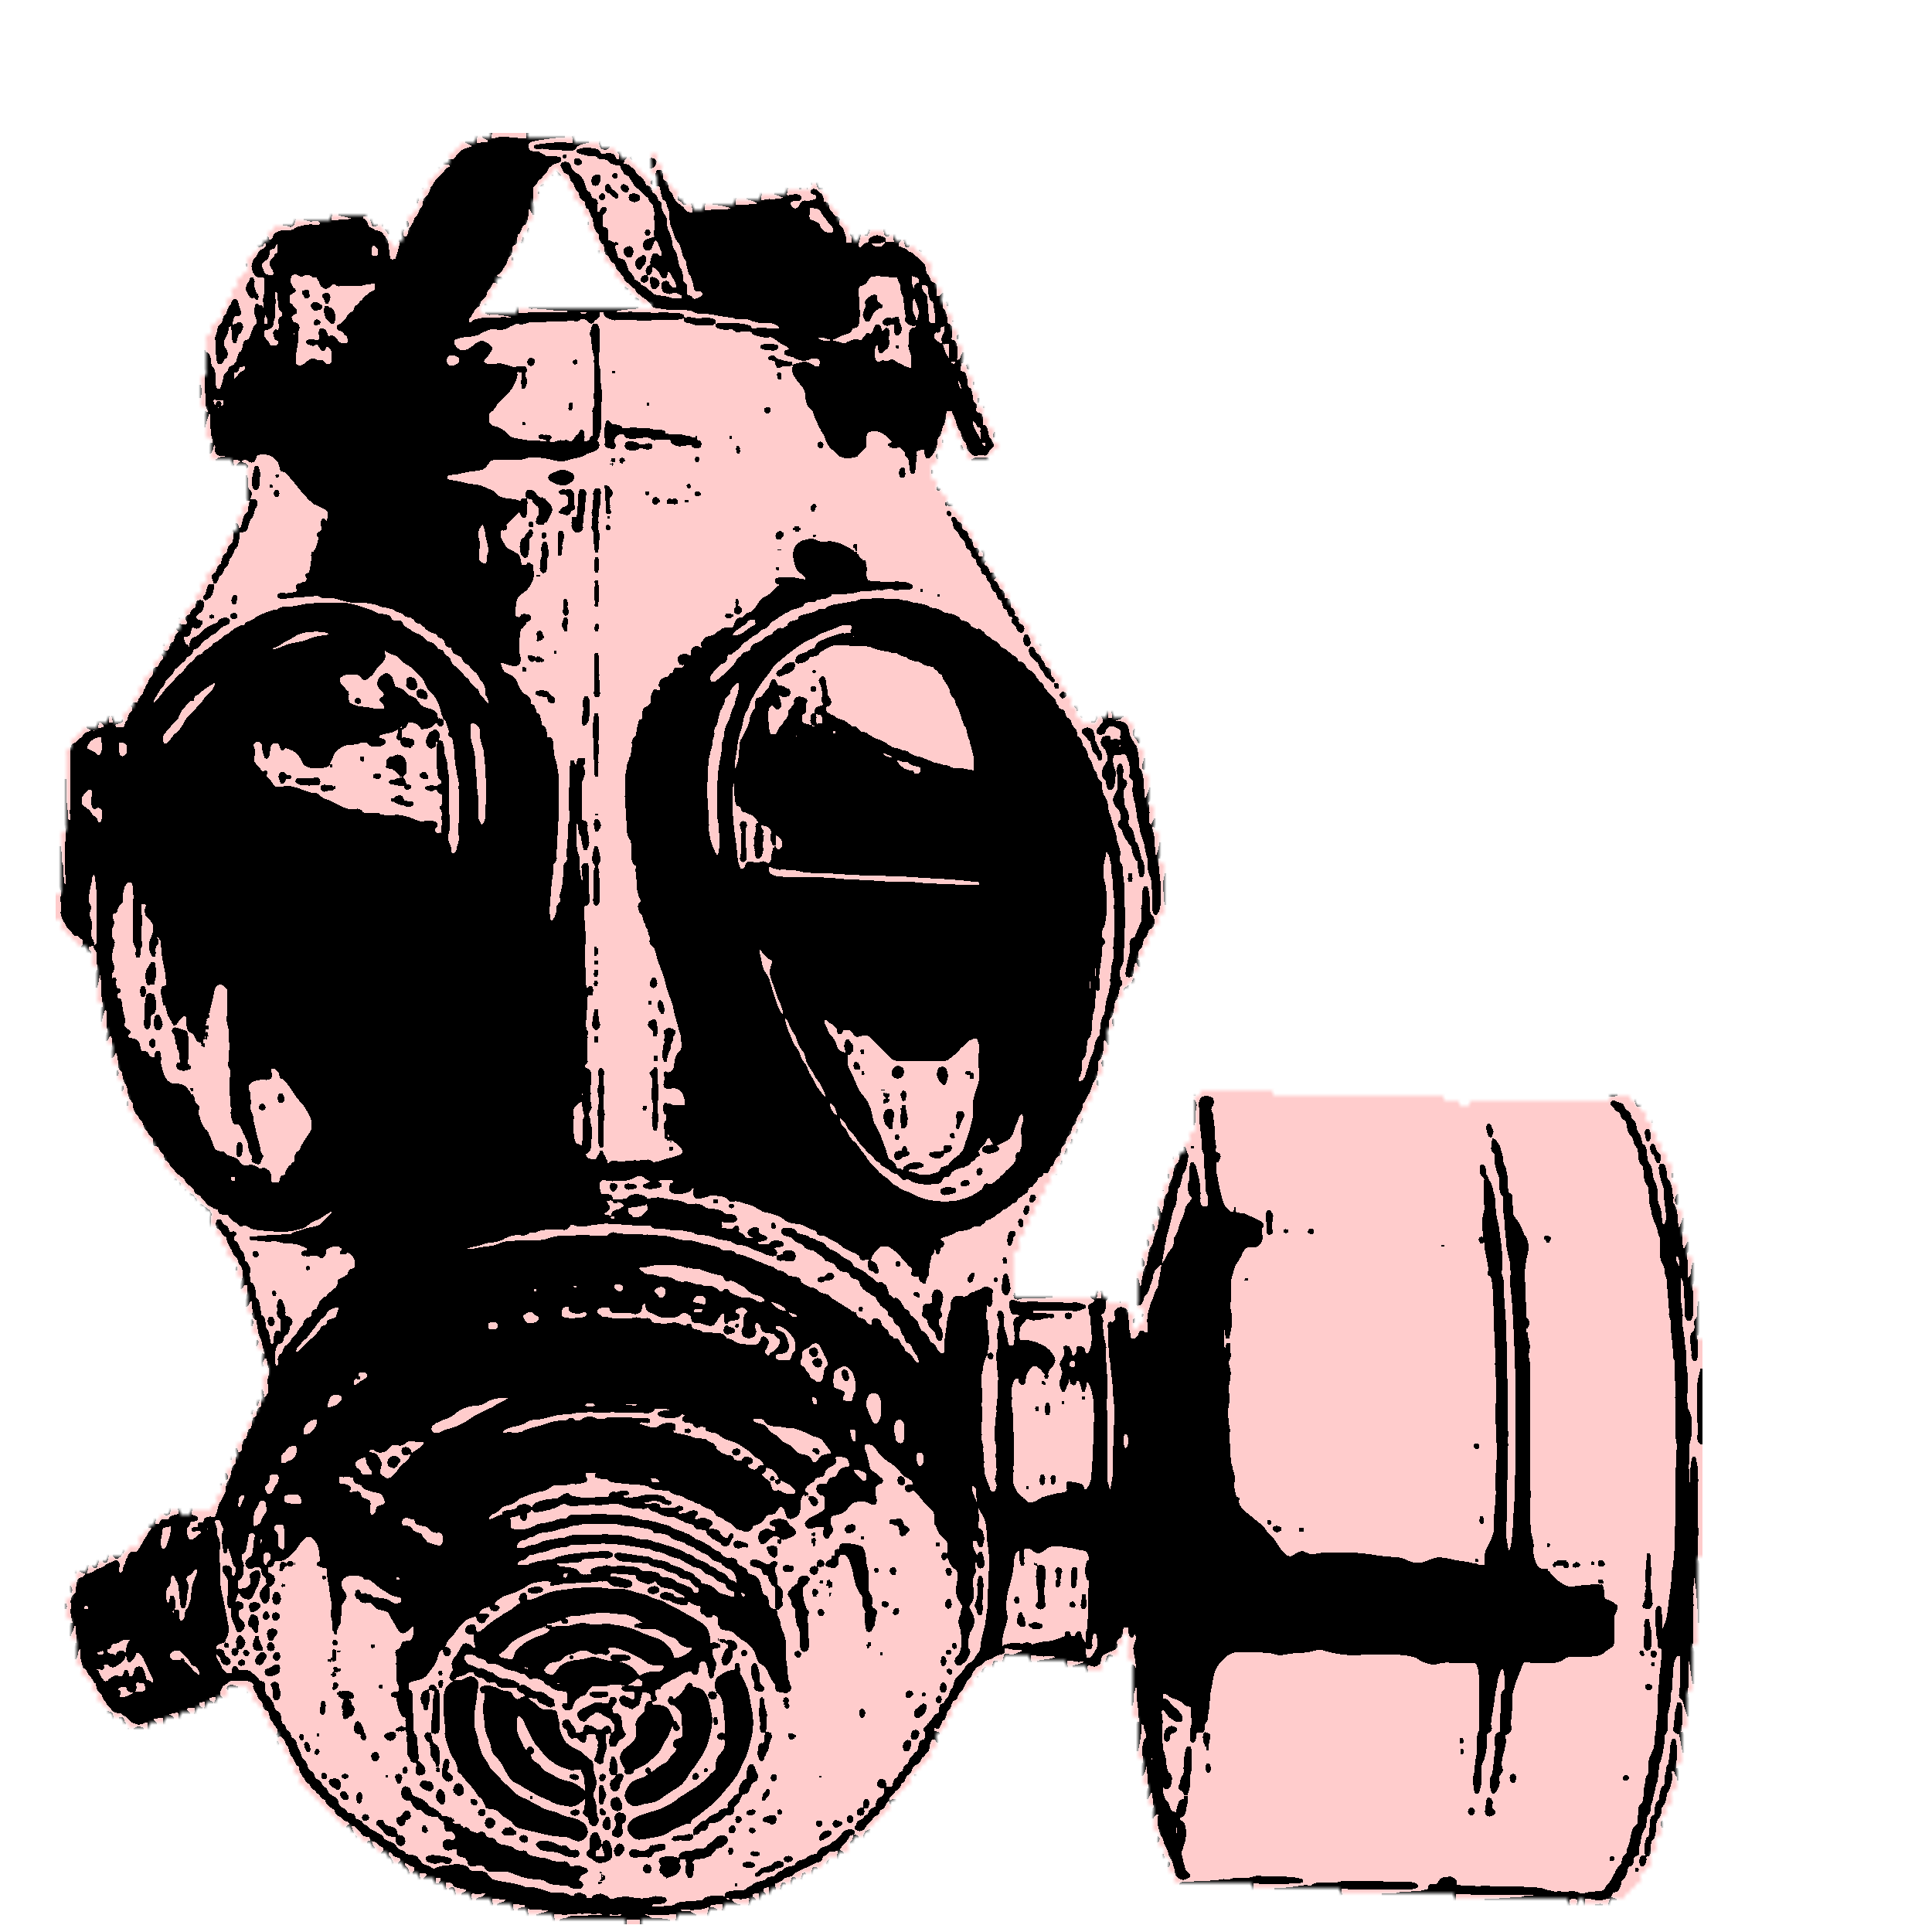 Gas Mask In Pink And Black